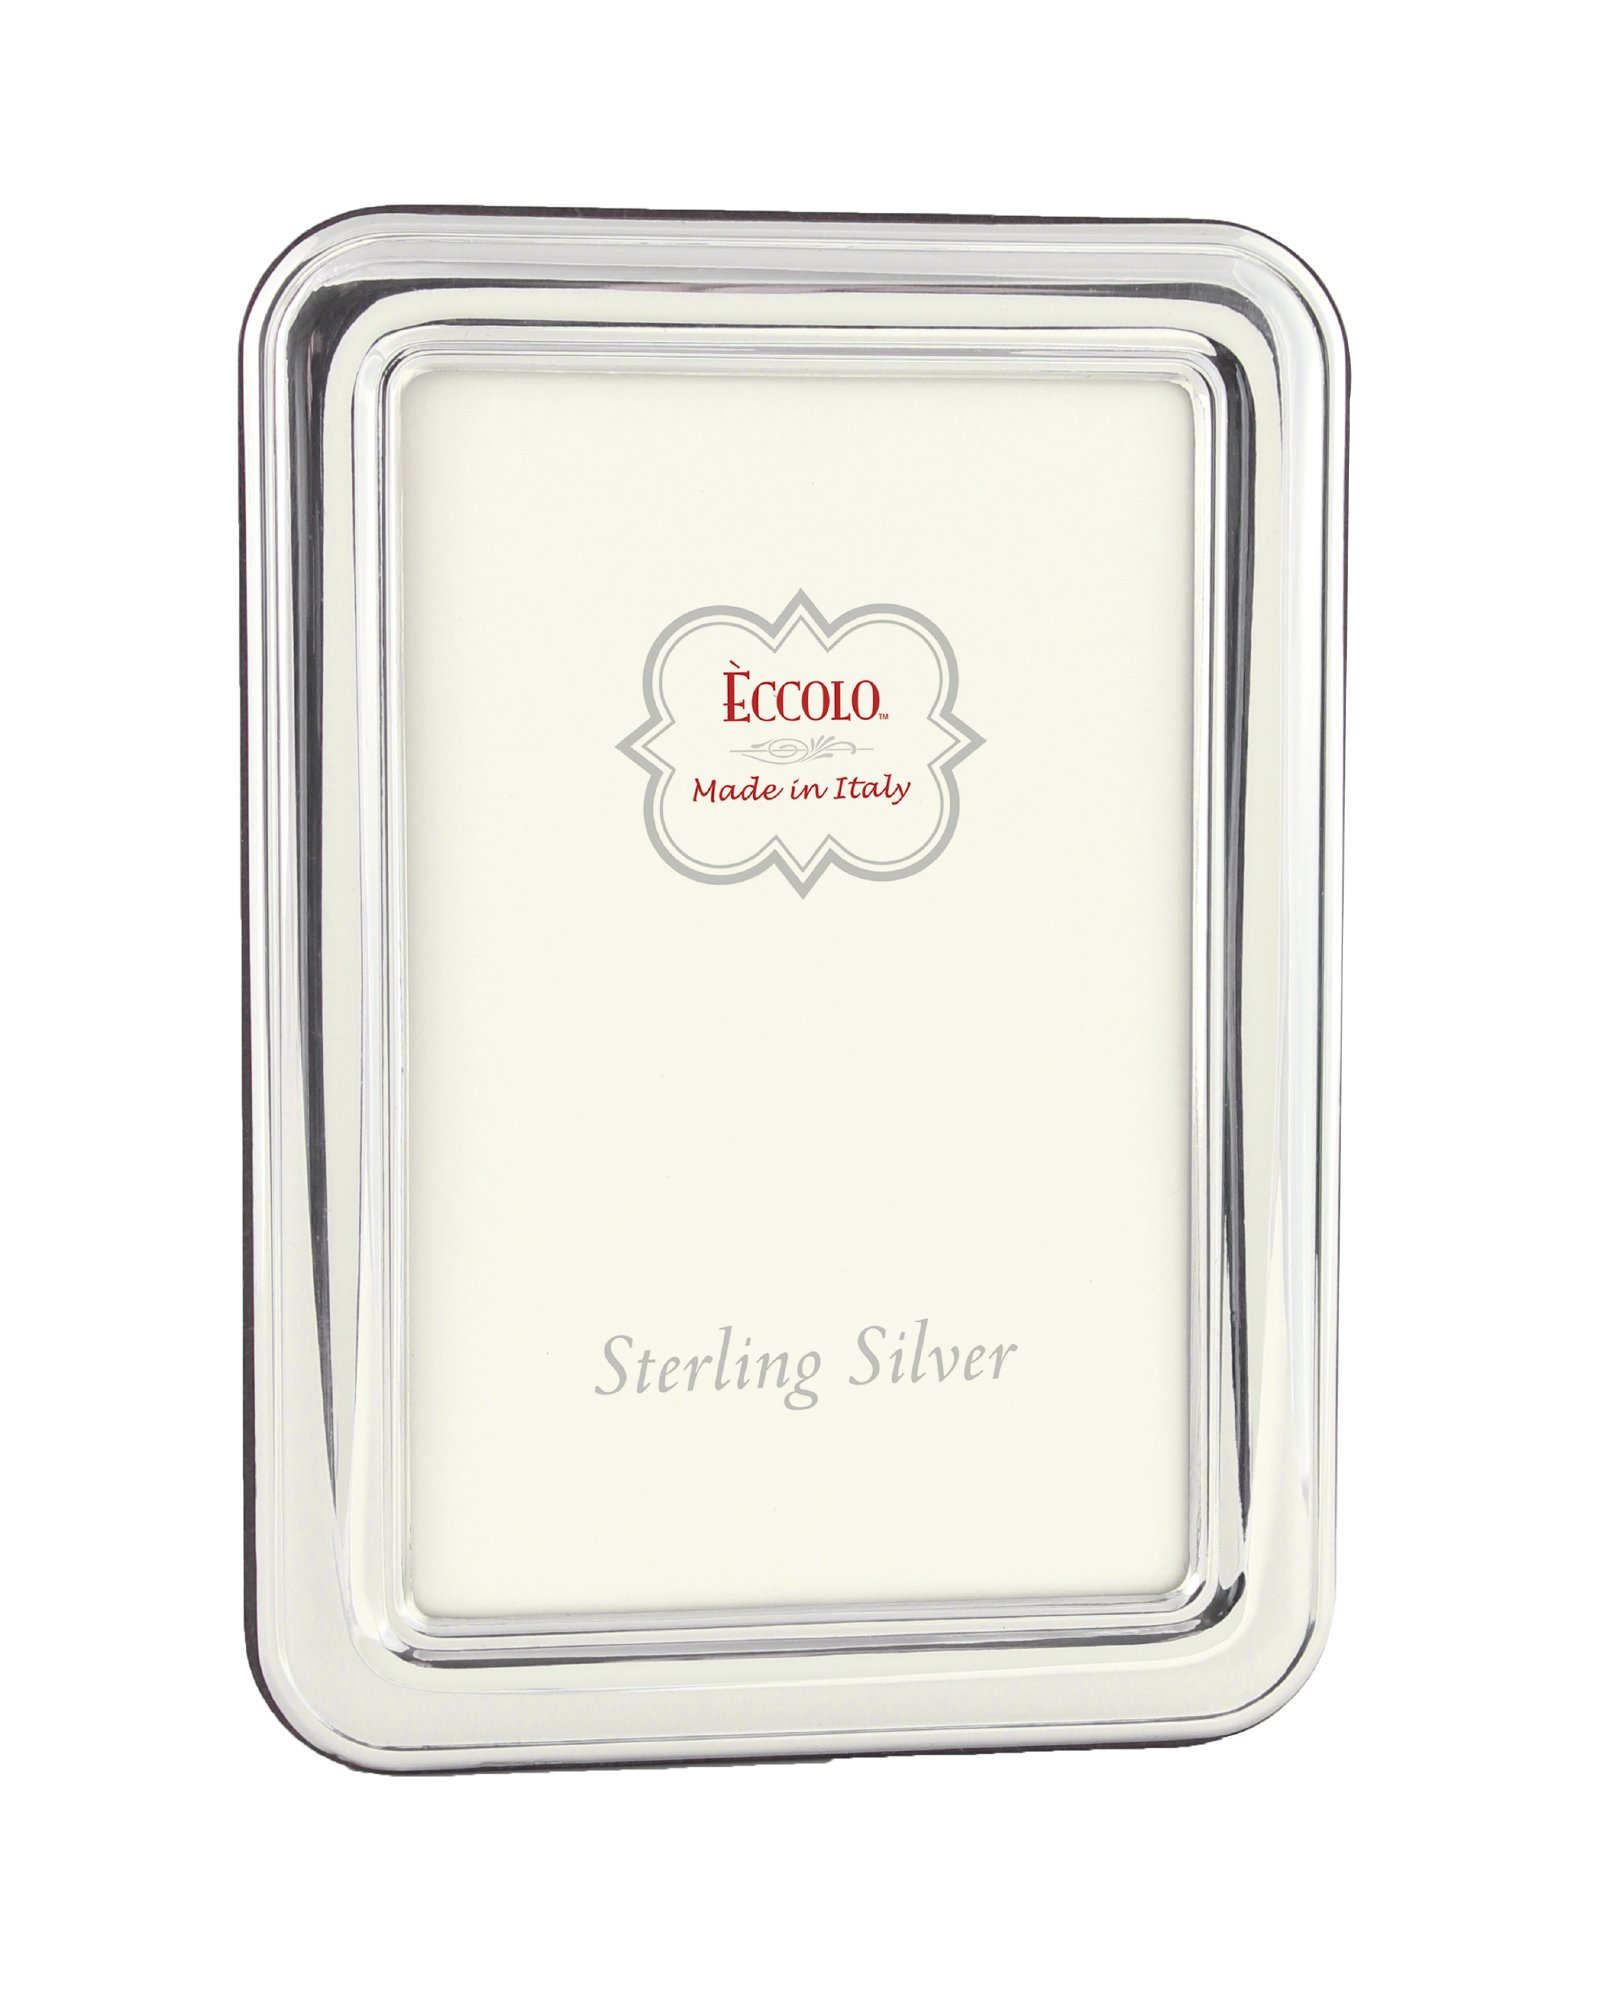 Eccolo Sterling Silver Frame, Holds 8 by 10-Inch Photo, Hyde Park